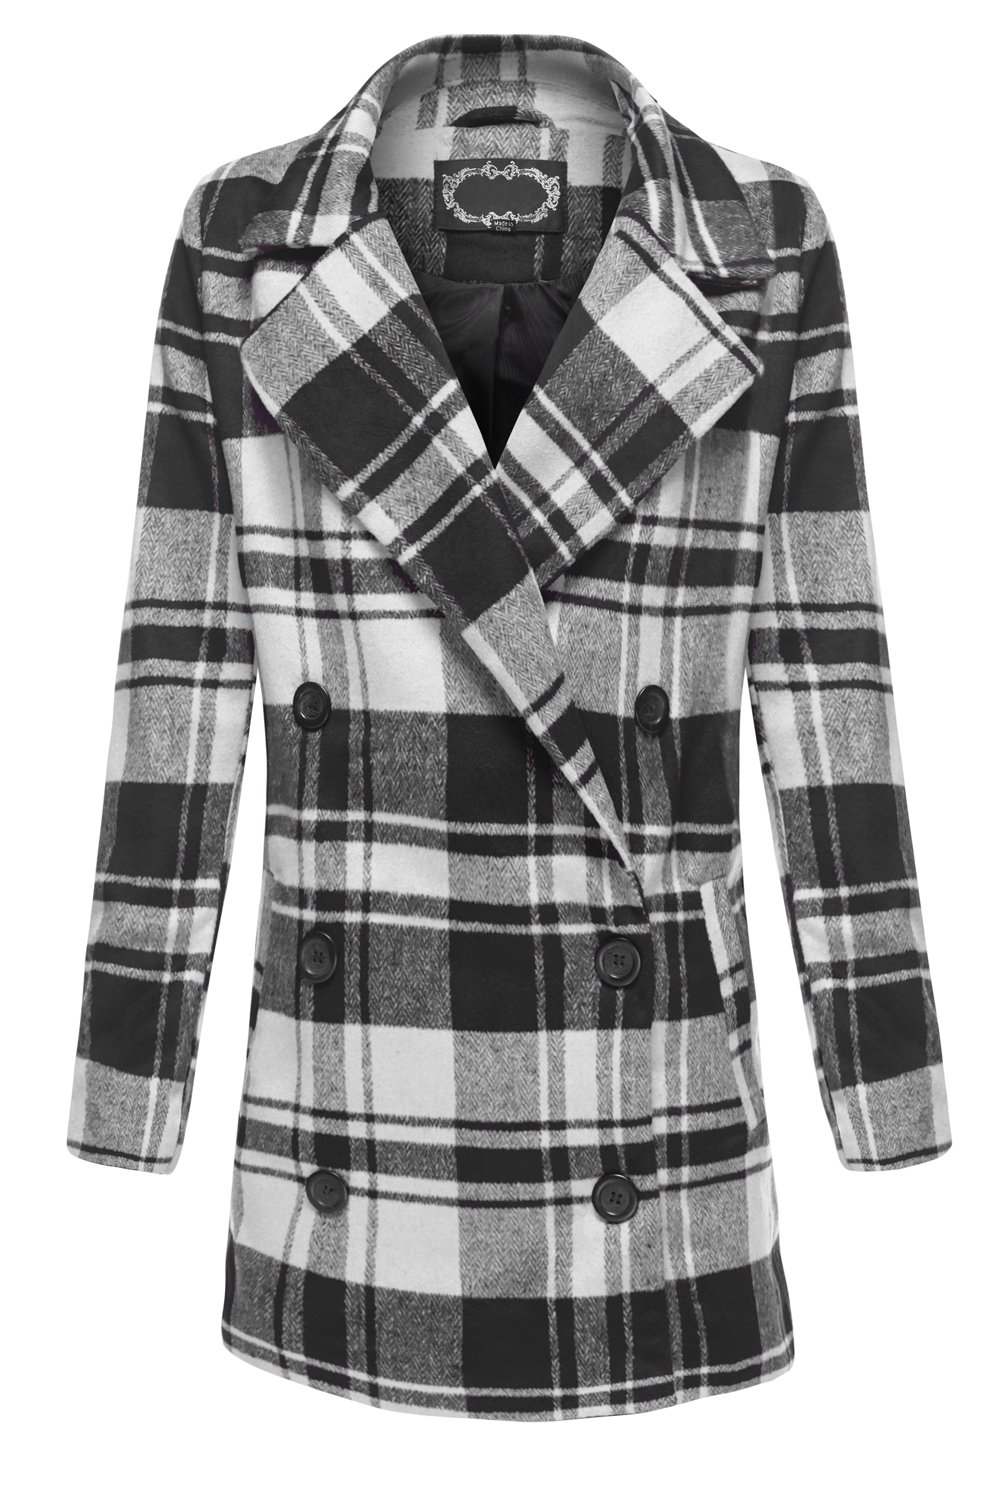 Plaid Oversized Double Breasted Wool look Coat Jackets 018-Black_Offwhite Large